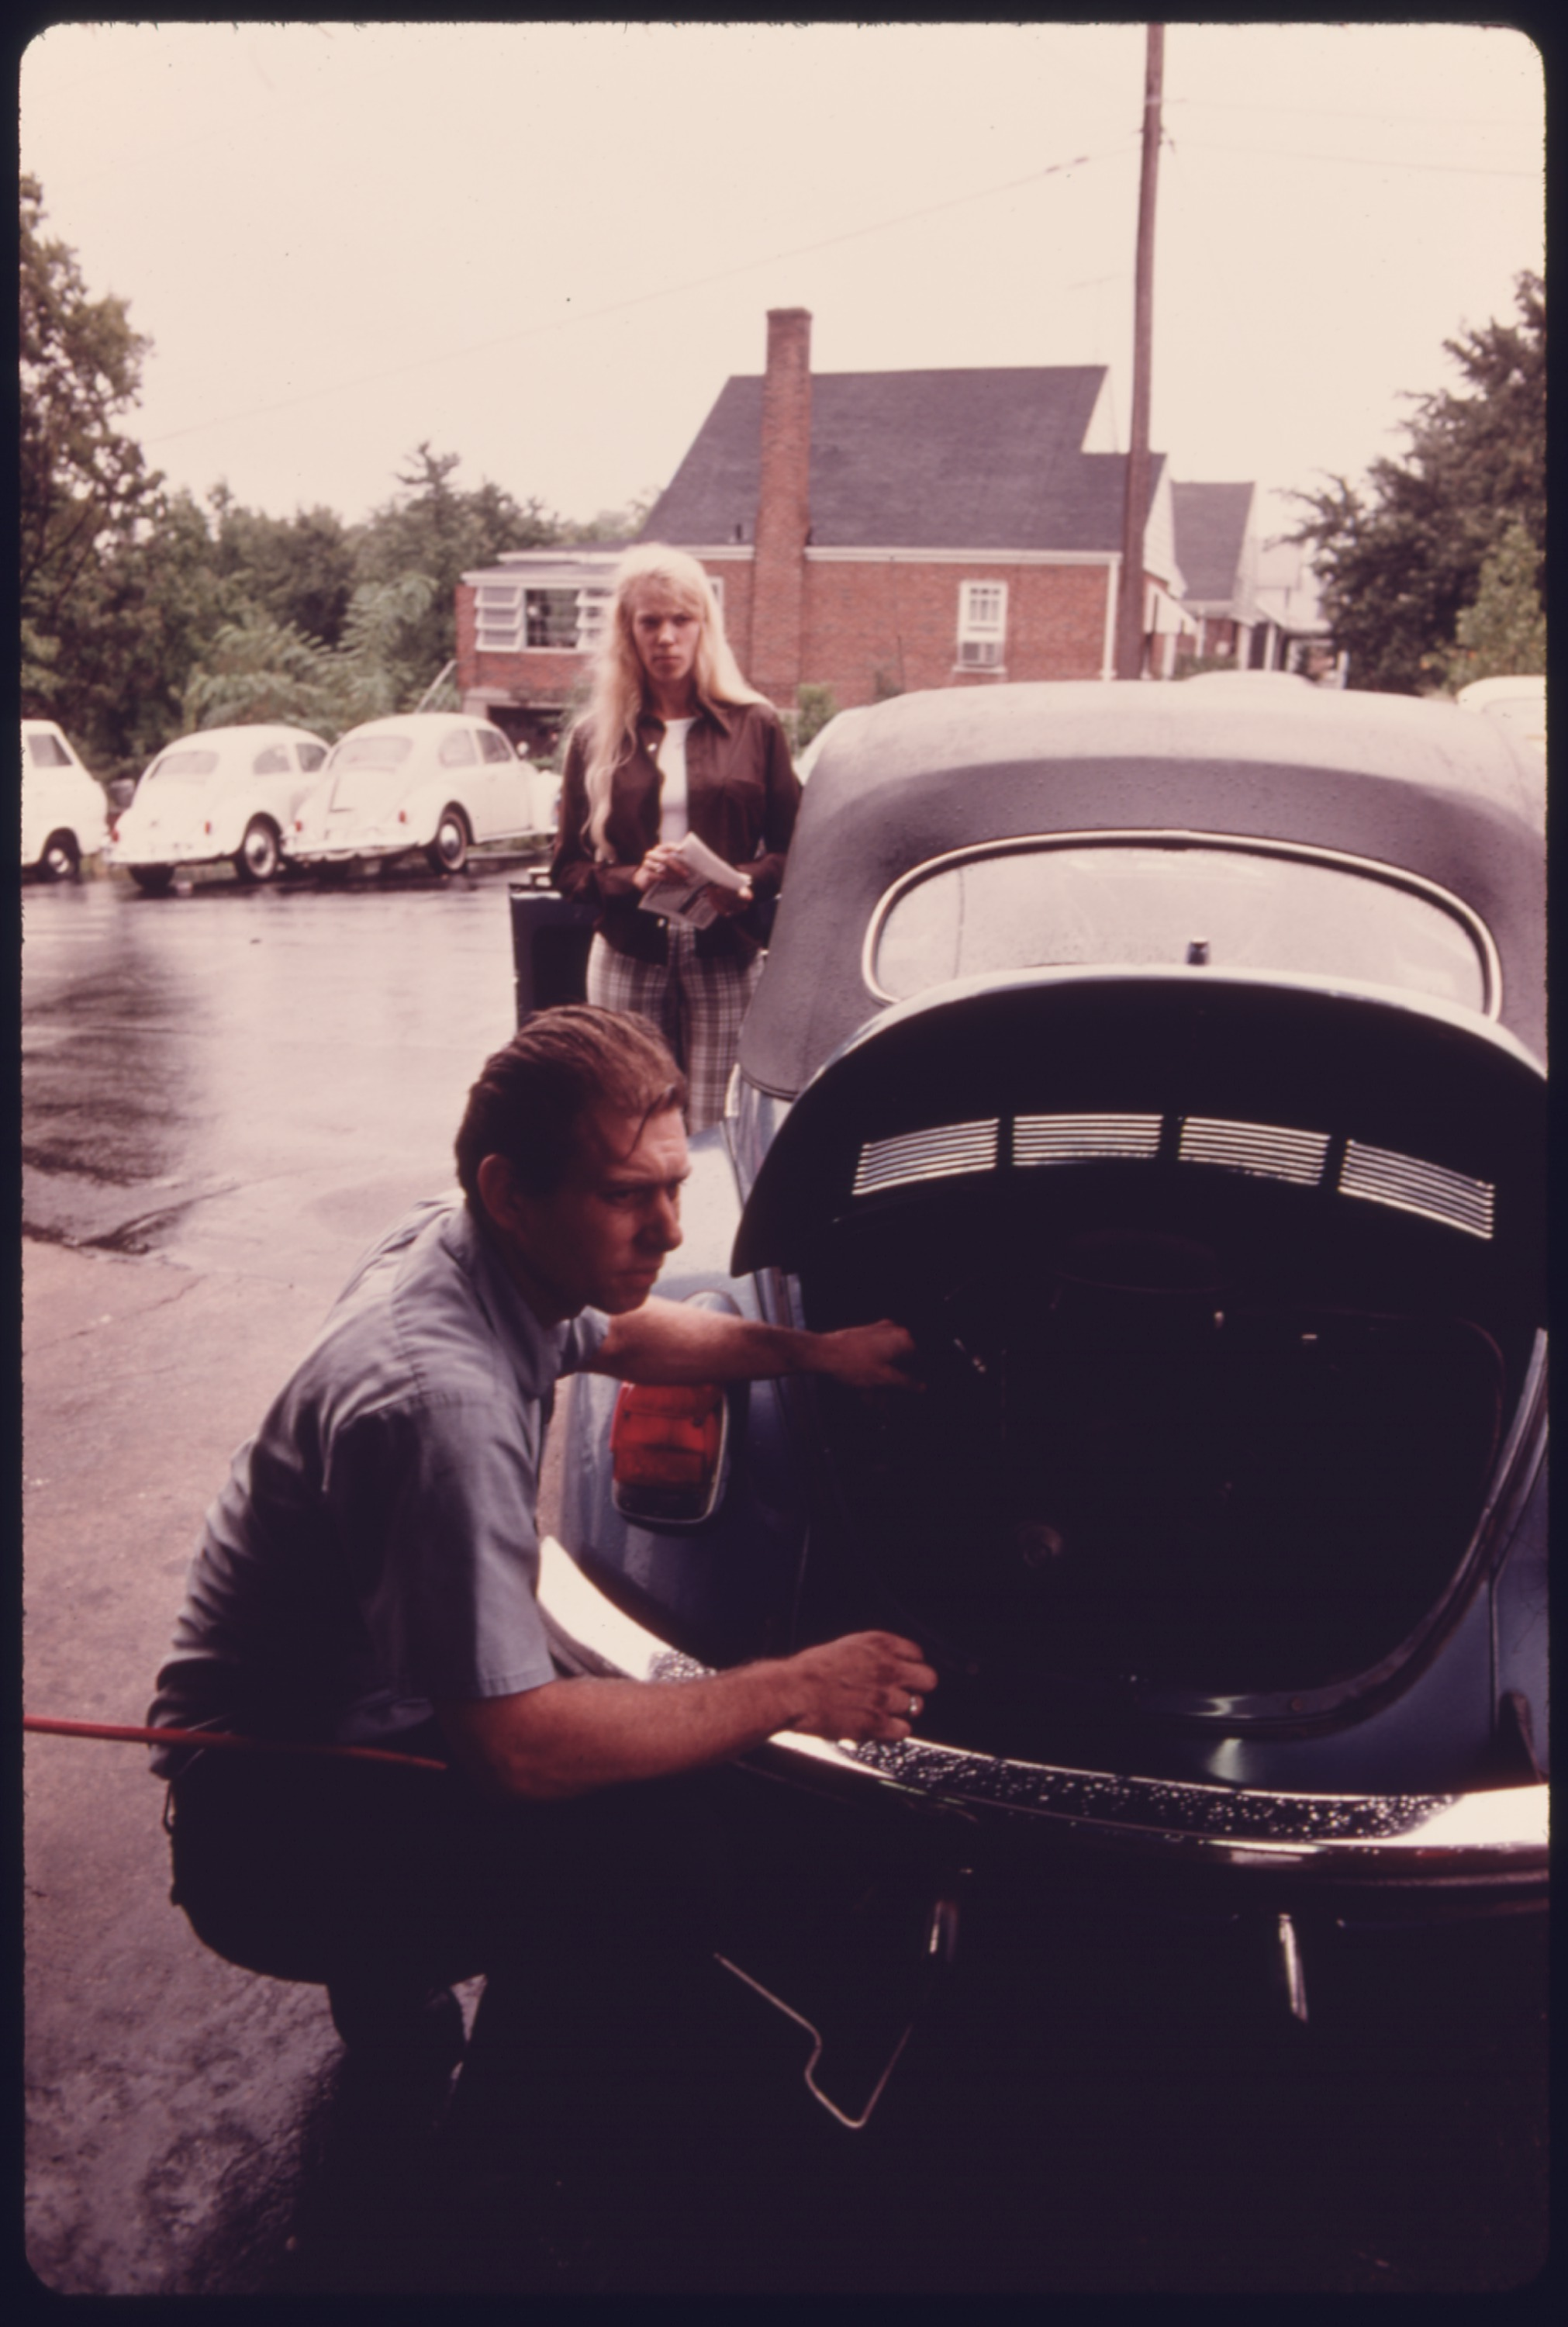 File:SERVICE STATION MECHANIC ADJUSTS THE ENGINE FOR A YOUNG WOMAN ...